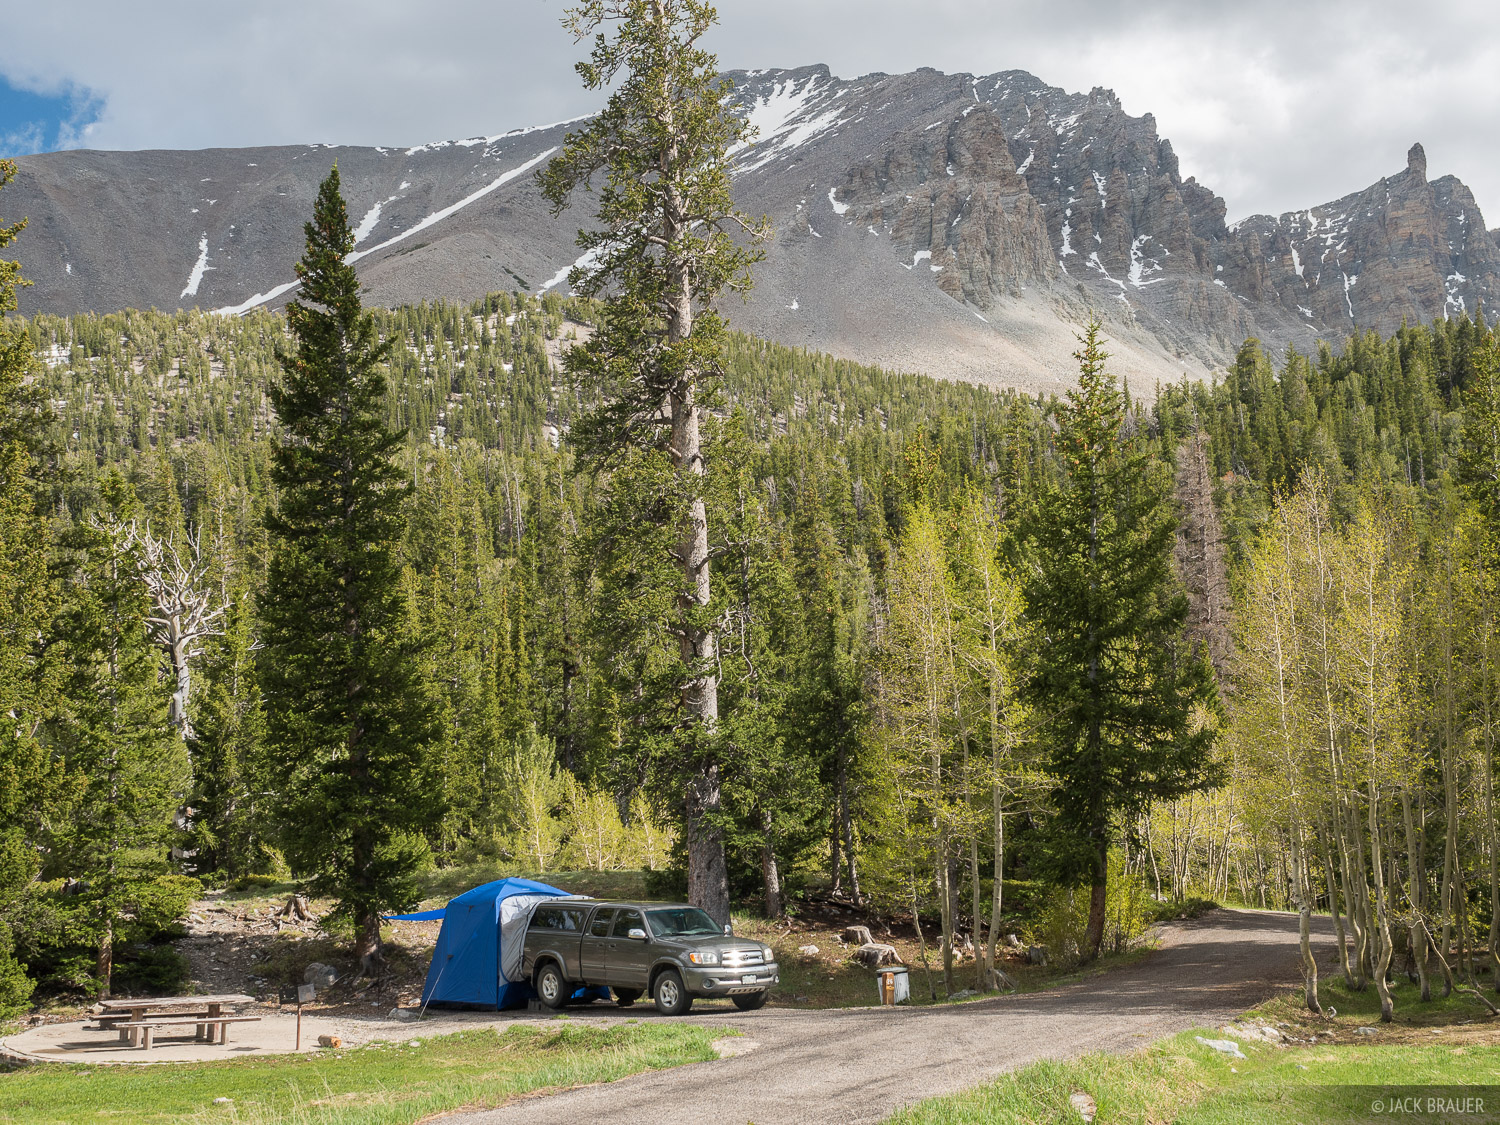 Camping at the Wheeler Peak Campground in Great Basin National Park, Nevada.